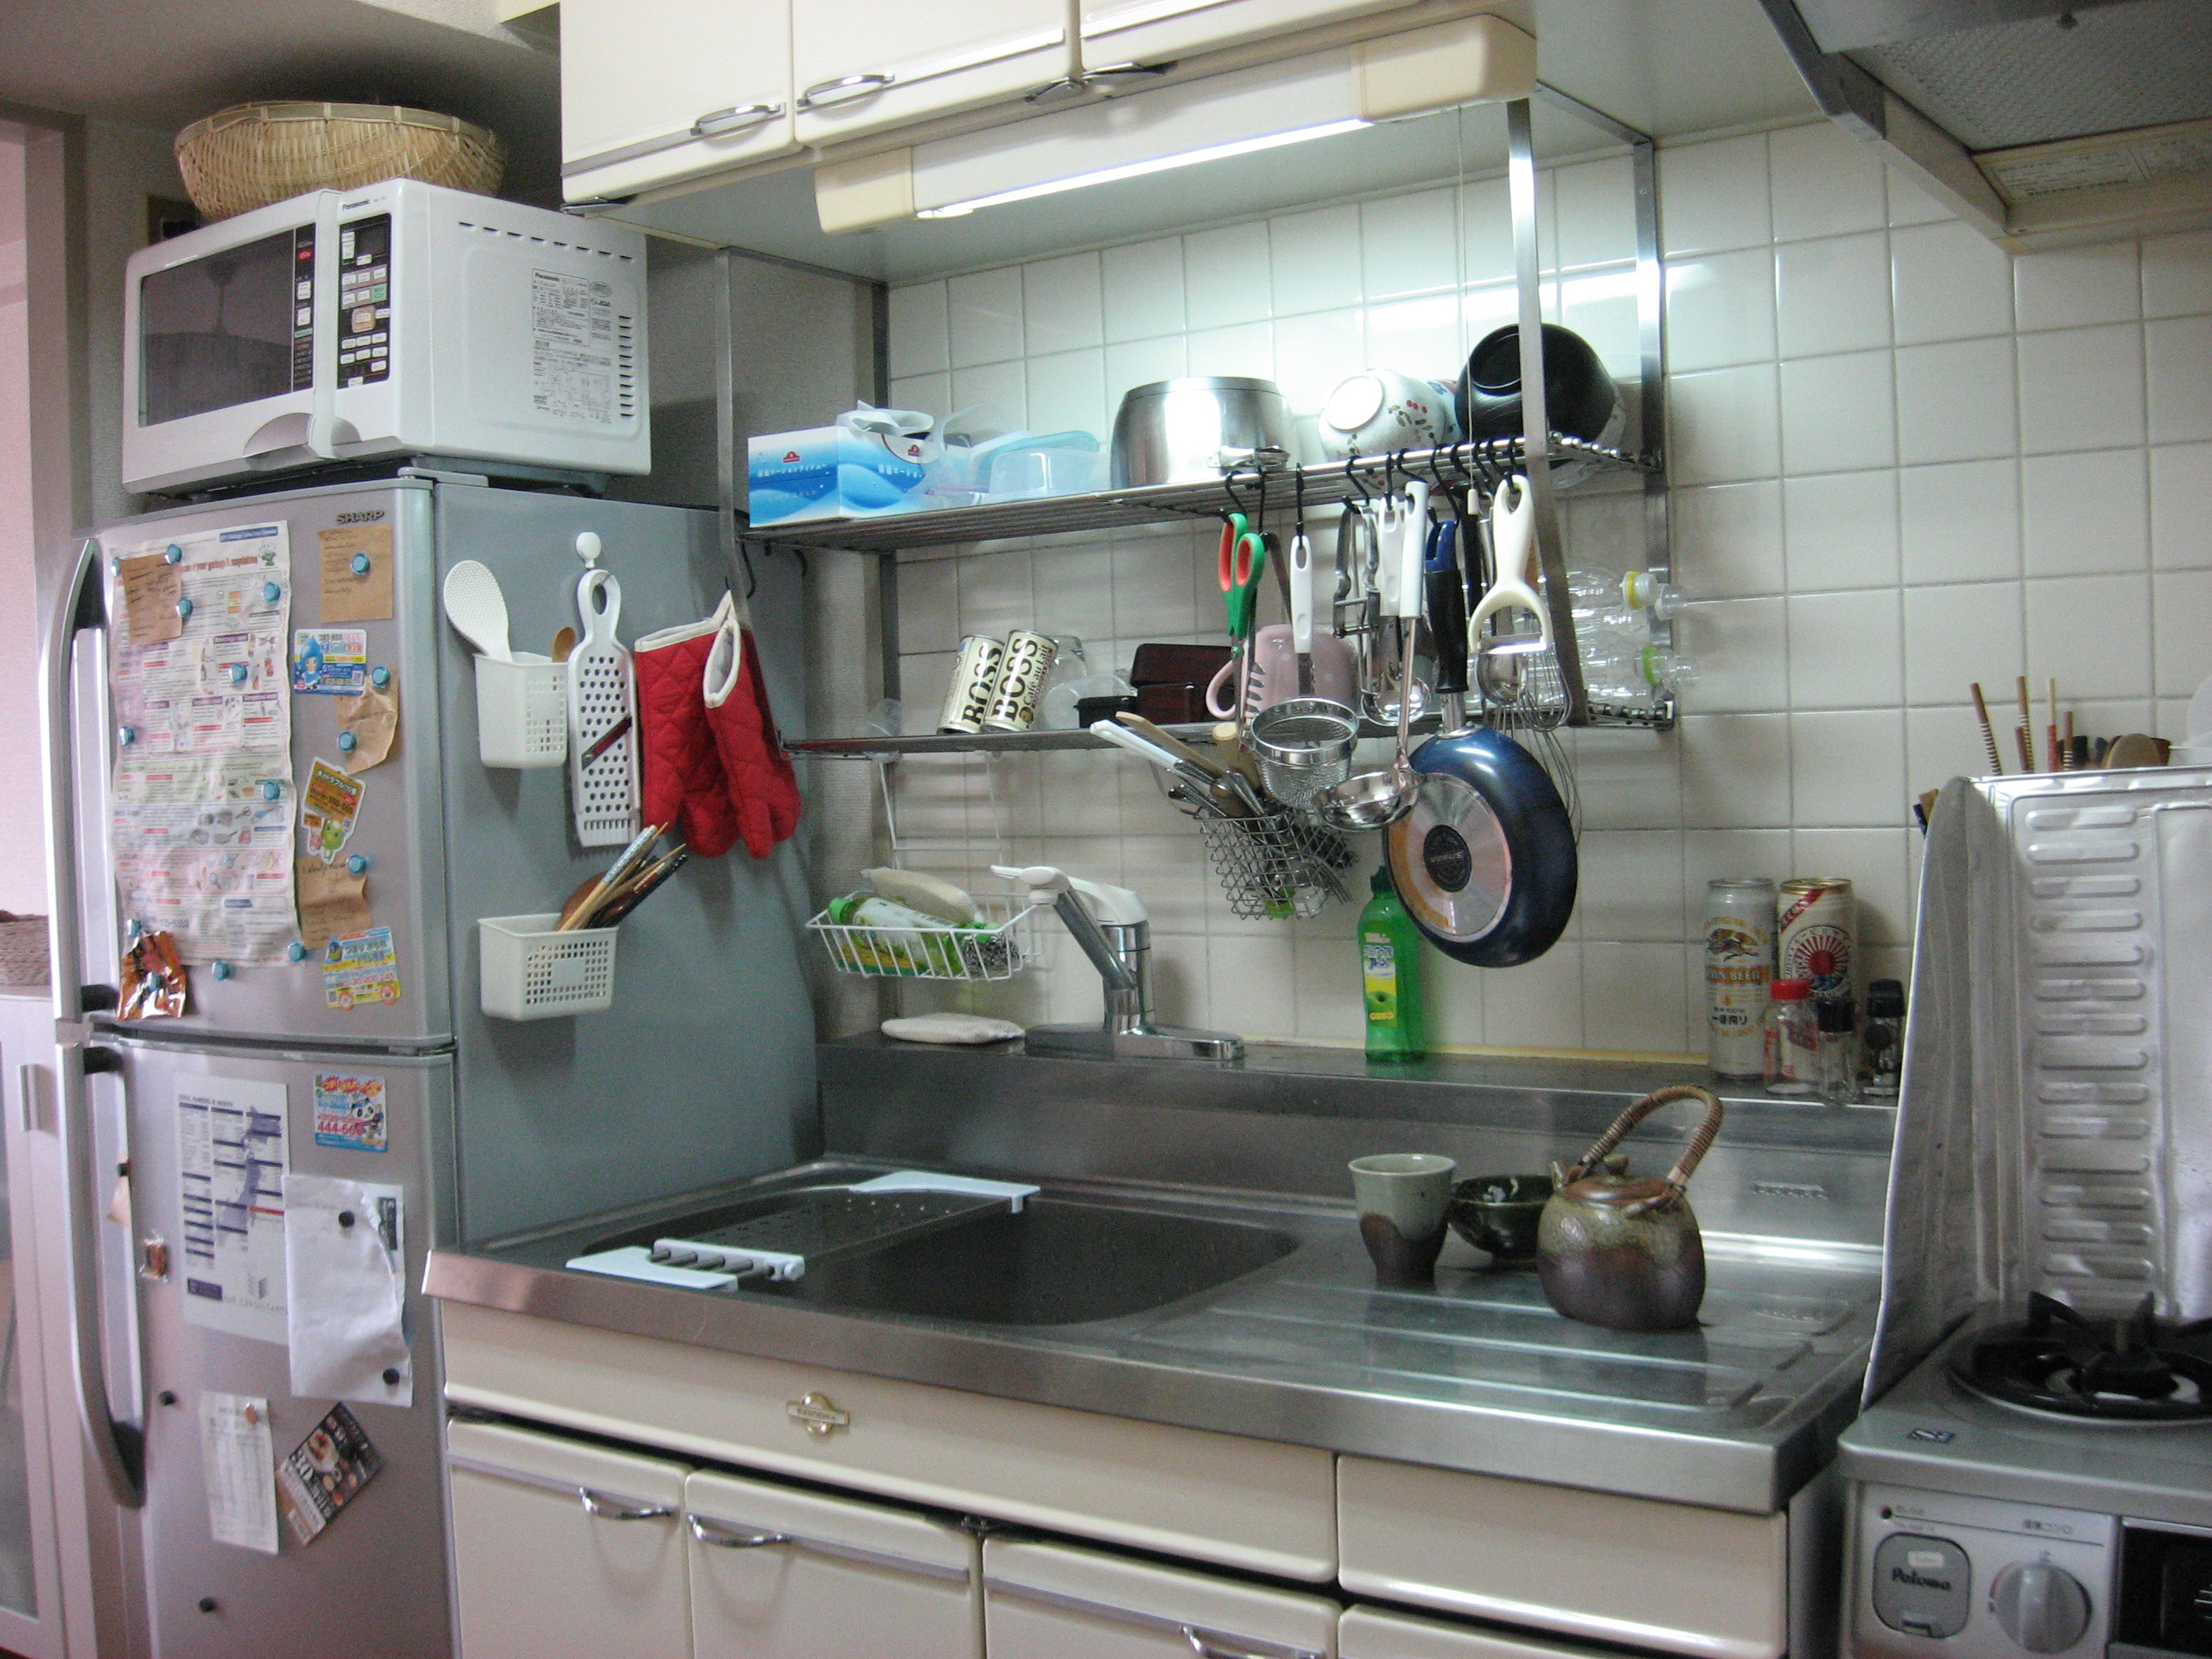 Strange kitchen contraption | The Japans